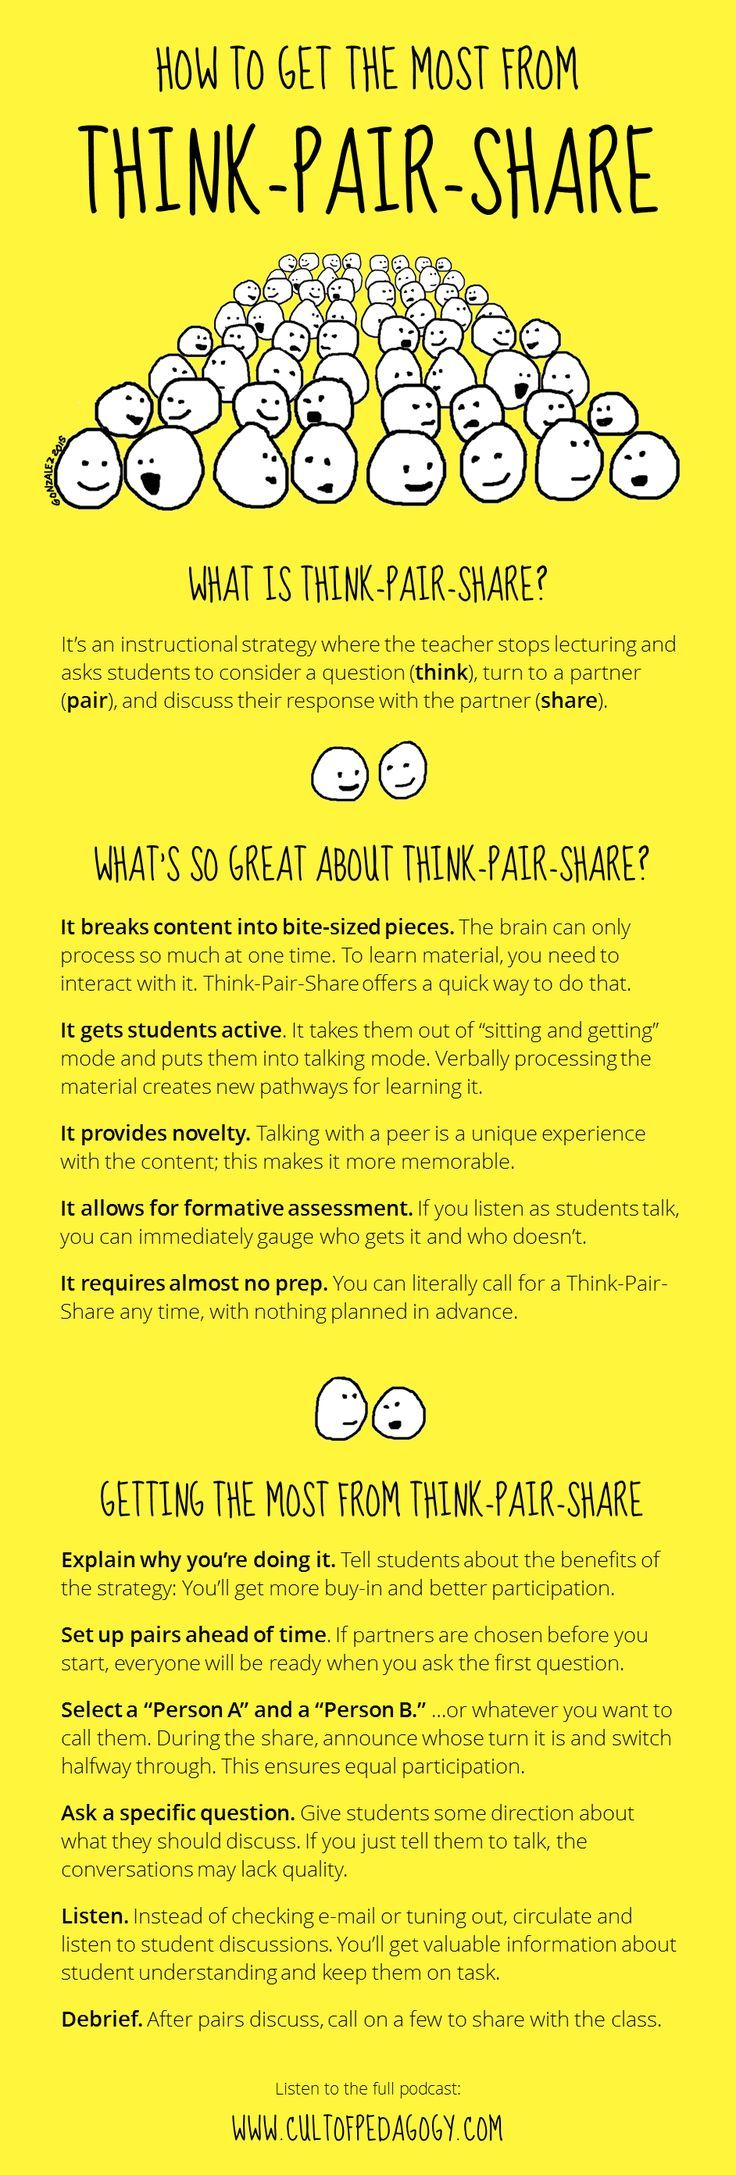 Think-pair-share is an easy, simple cooperative learning strategy that quickly adds more student engagement to a lesson. These tips will help you get the most from it.